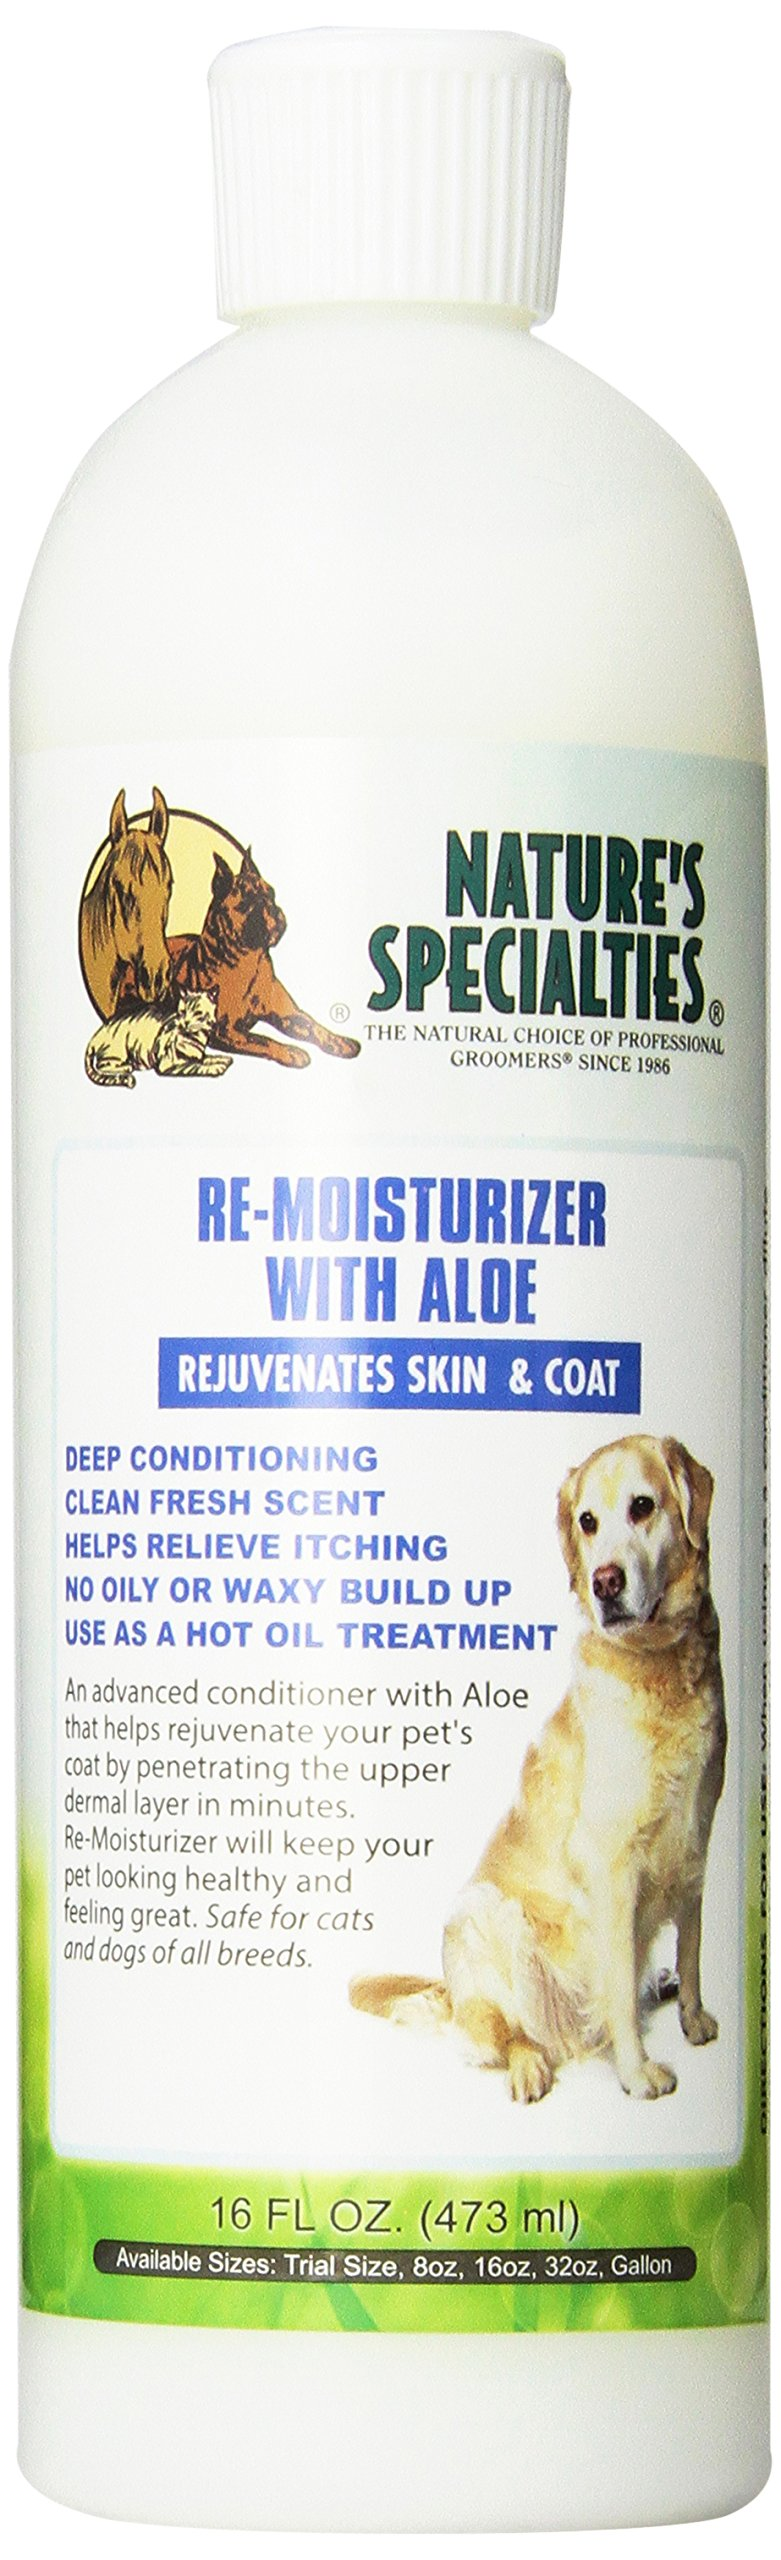 Nature's Specialties Aloe Remoisturizer Pet Conditioner, 16-Ounce